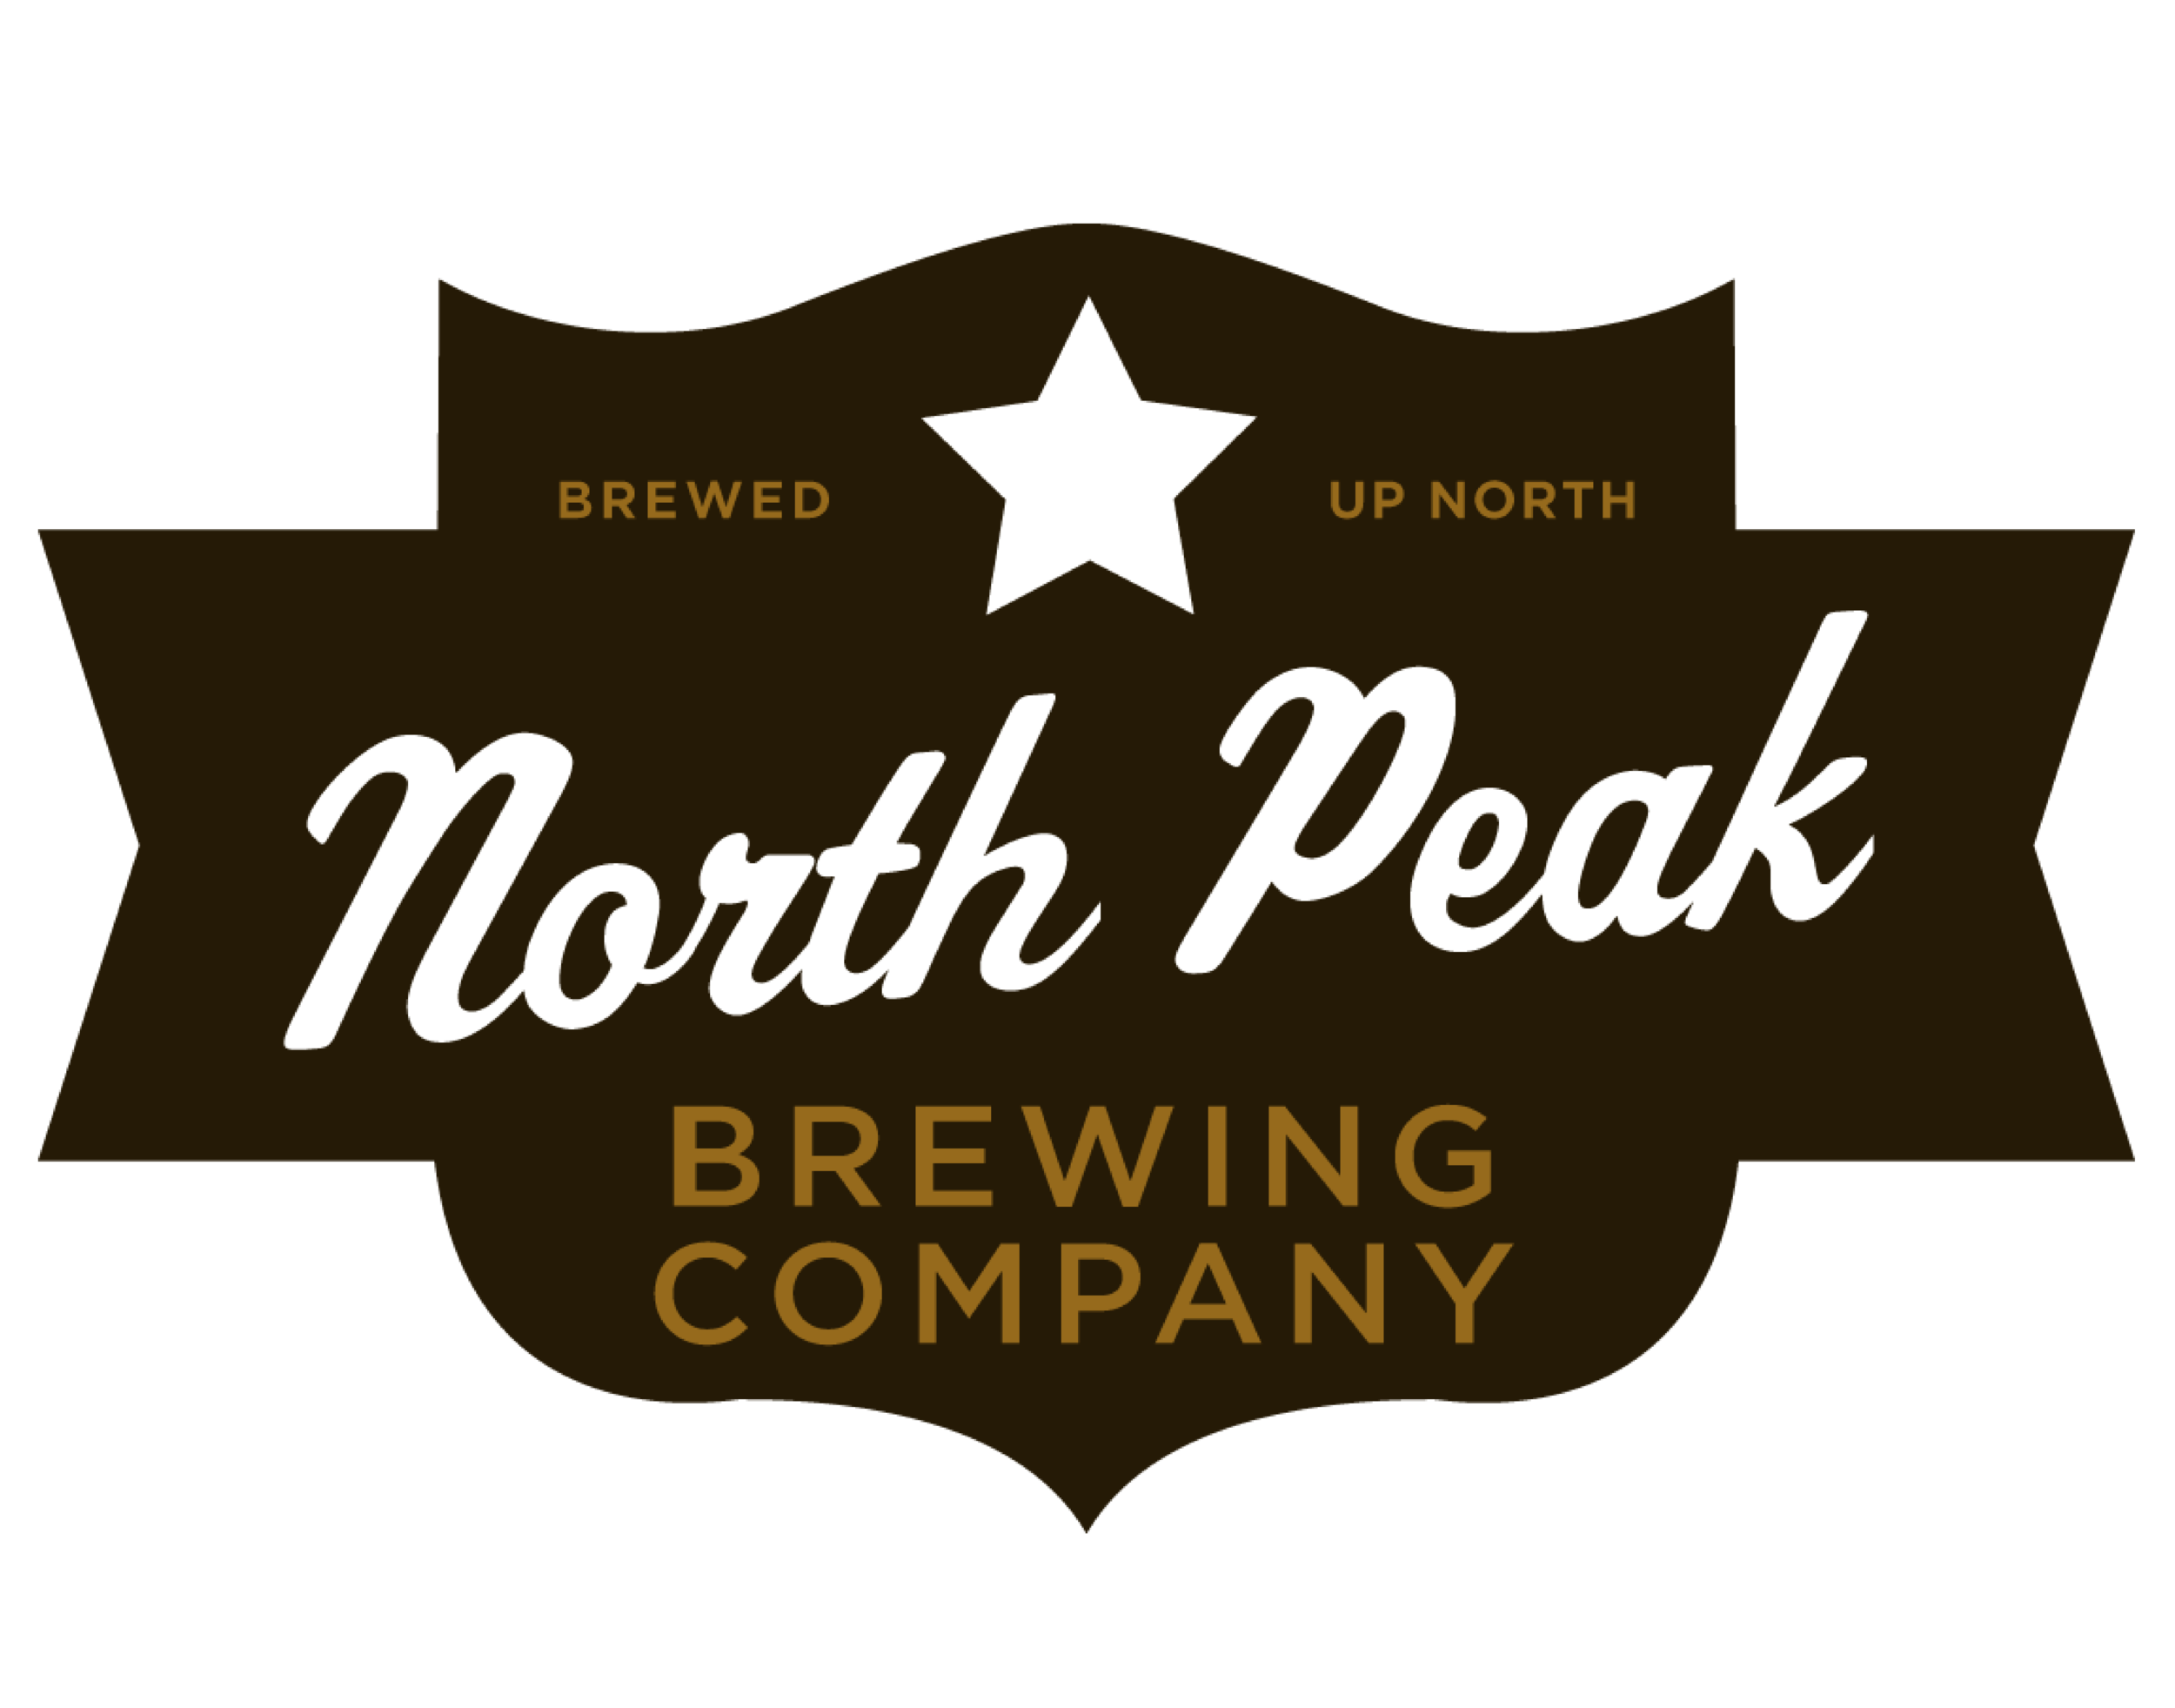 North Peak Brewing Company logo. Links to North Peak Brewing Company website.